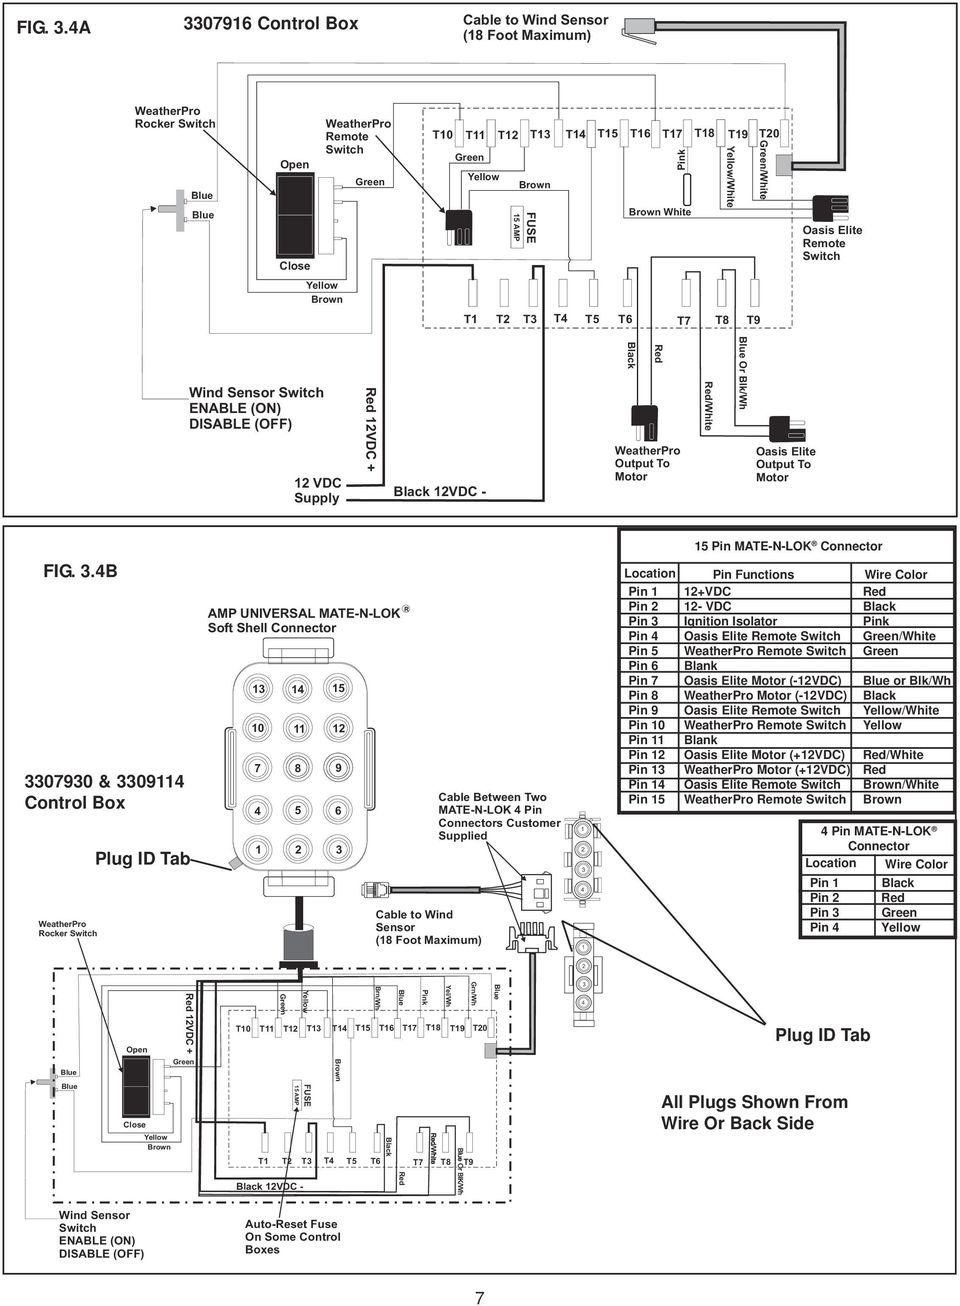 Diagnostic Service Manual Pdf Yamaha 704 Control Wiring Diagram Switch Brown T T3 T4 T5 T6 T7 T8 T9 Wind Sensor Enable On